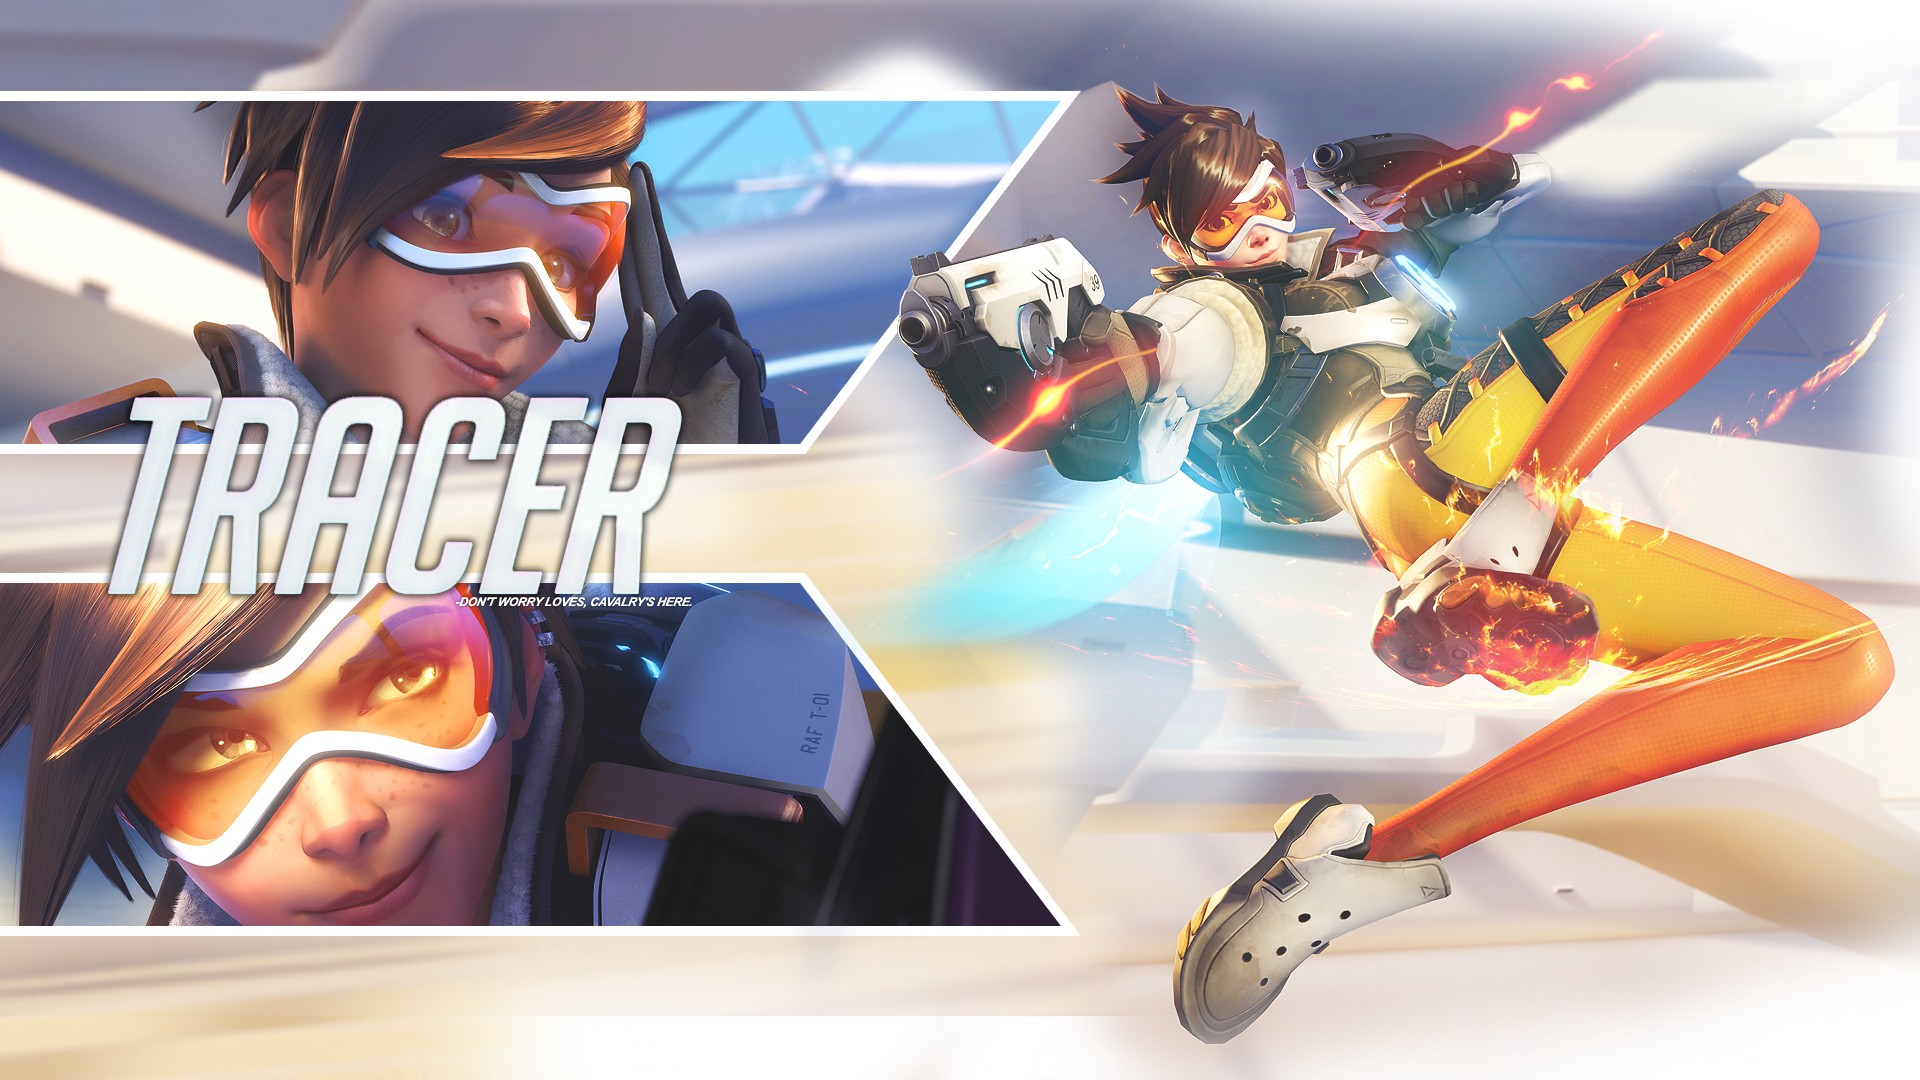 Overwatch full hd wallpaper and background 1920x1280 - 1920x1080 Gorgerous Overwatch Tracer Wallpaper 1920x1080 Computer